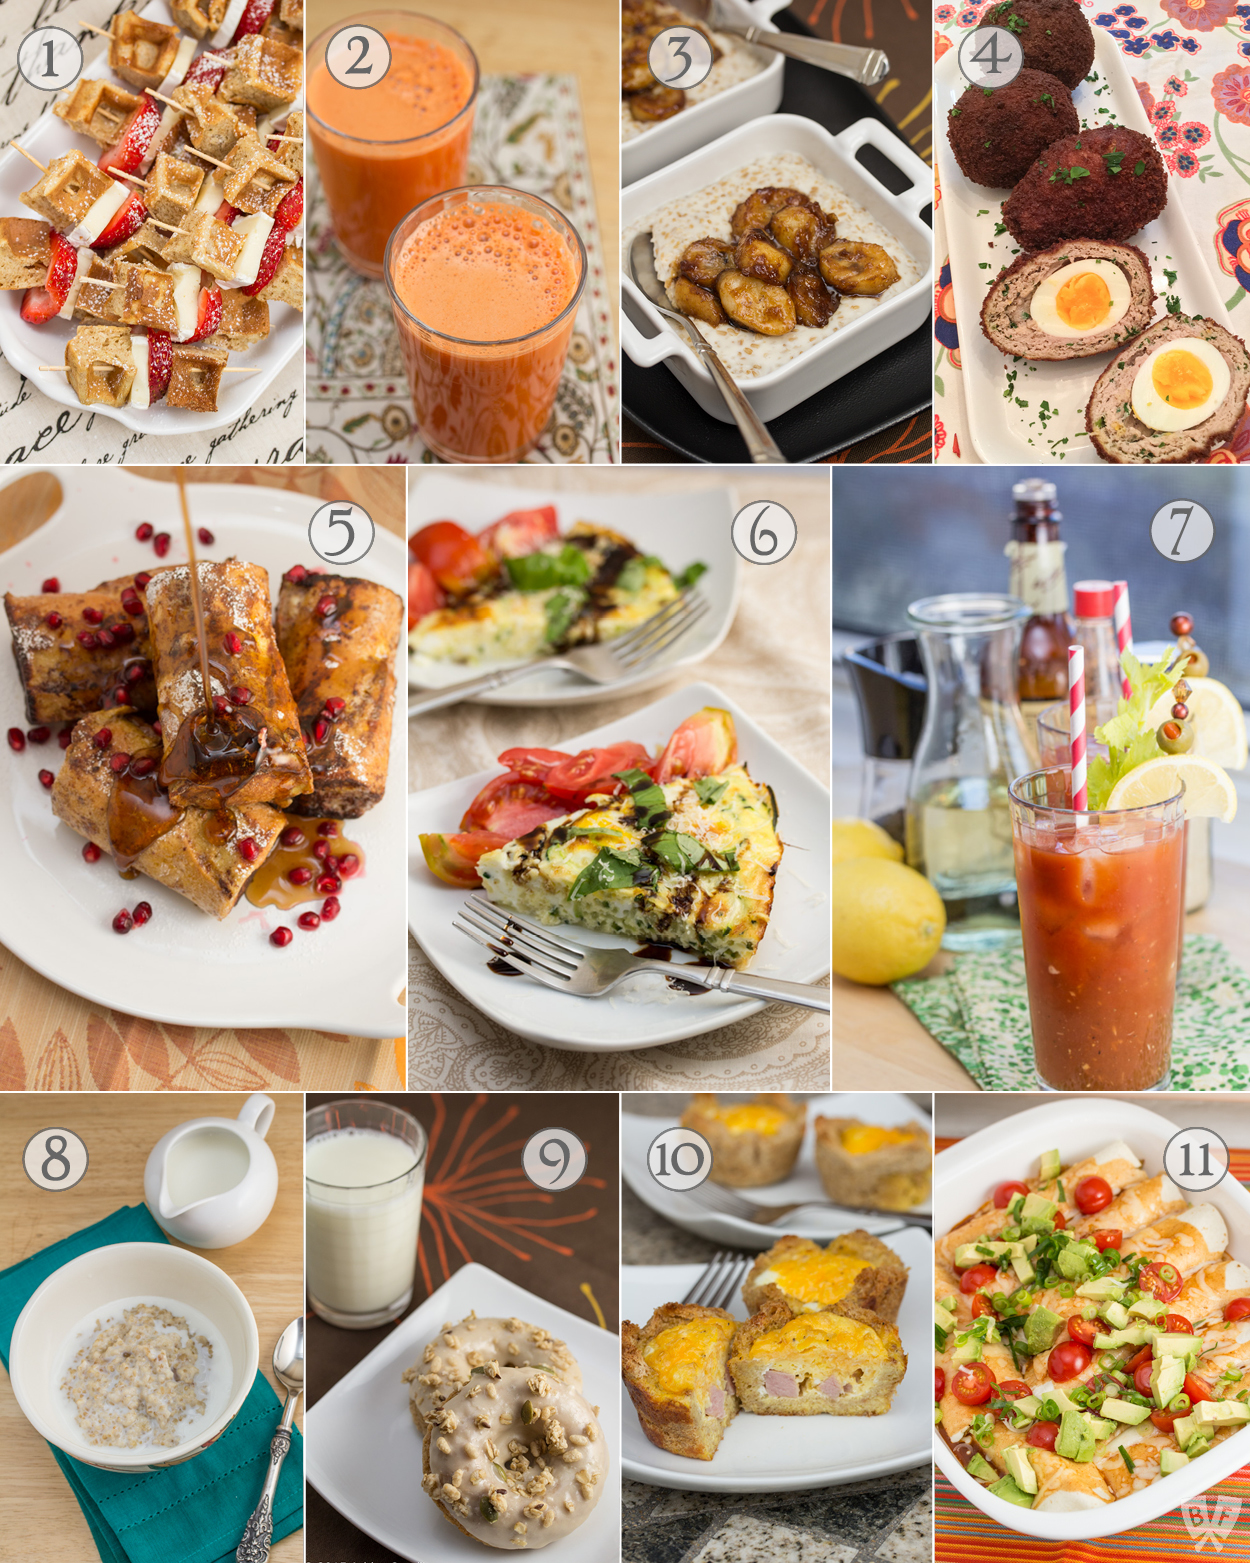 Brunch Week Recipe Roundup: Celebrate the best meal of the day with some of our favorite brunch food & cocktail recipes!